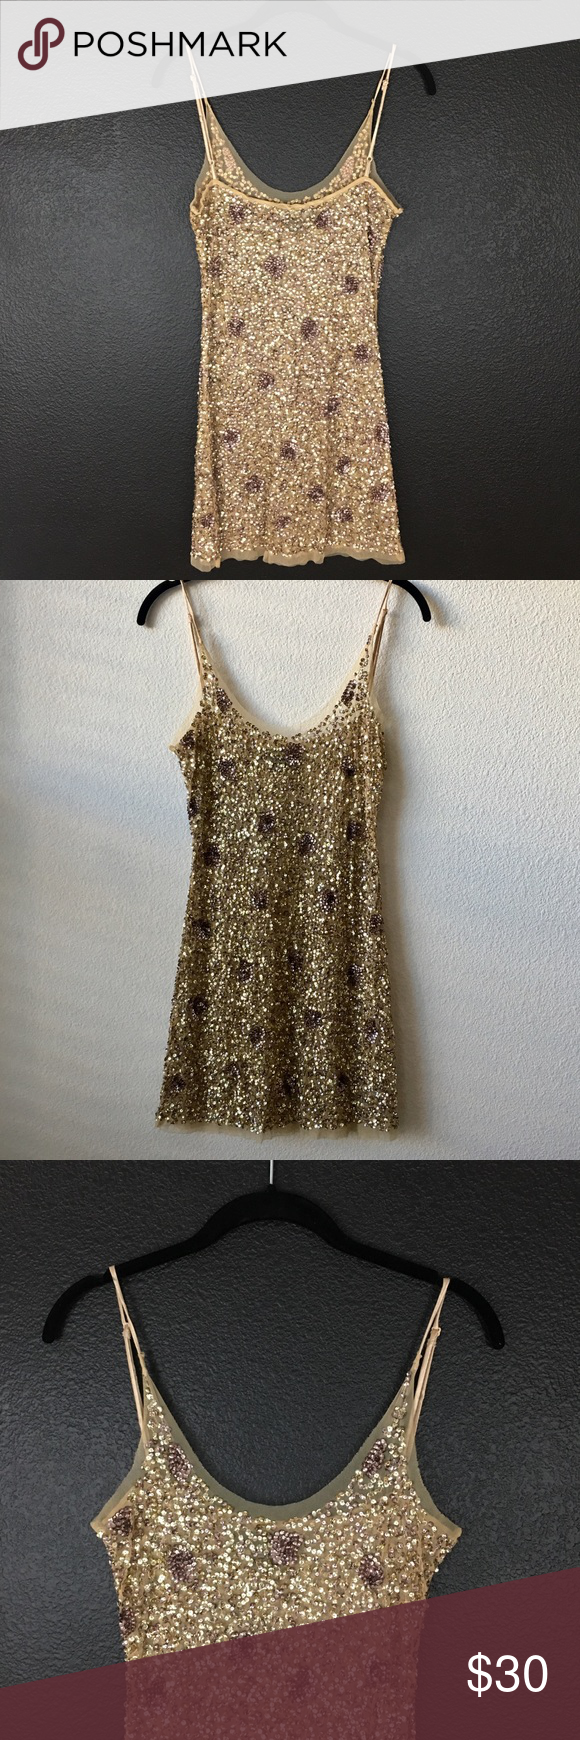 """Adrian B. Rose Gold Mini Sequence Party Dress M Do you need a party dress or would you like to have it on hand?  Adrian B. Rose Gold Mini Sequence is a prefect choice'. Two tone with Rose and Gold is stunning.  It has shear lining. Picture show different lighting, day, late afternoon, evening, to night. Condition: NWOT New without tags Style:  Mini Sequence Dress Size: Medium  Color: Rose Gold Material:  Sequence Measurements:  Bust 34 Waist 32 Hip 34 Shoulder to Hem 28"""" Dresses Mini"""